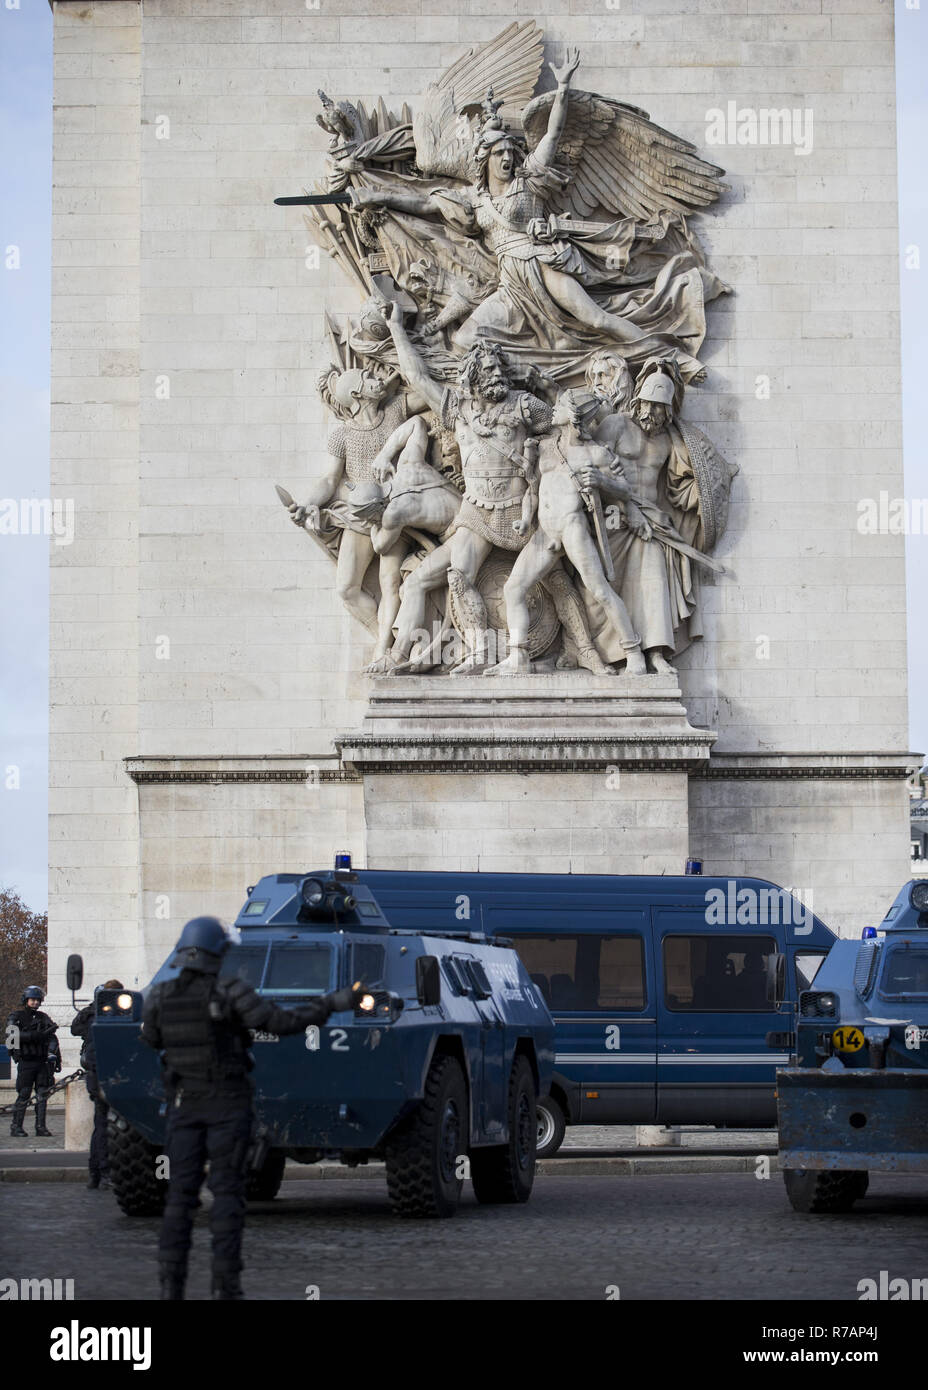 """Paris, France. 8th Dec, 2018. Armored vehicles seen arriving at the Arc De Triomphe during a 'Yellow Vest' protest in Paris.Without any political affiliation, the """"""""˜Yellow Vest' movement rallies in various cities in France this saturday against taxes and rising fuel prices. Credit: Sathiri Kelpa/SOPA Images/ZUMA Wire/Alamy Live News Stock Photo"""